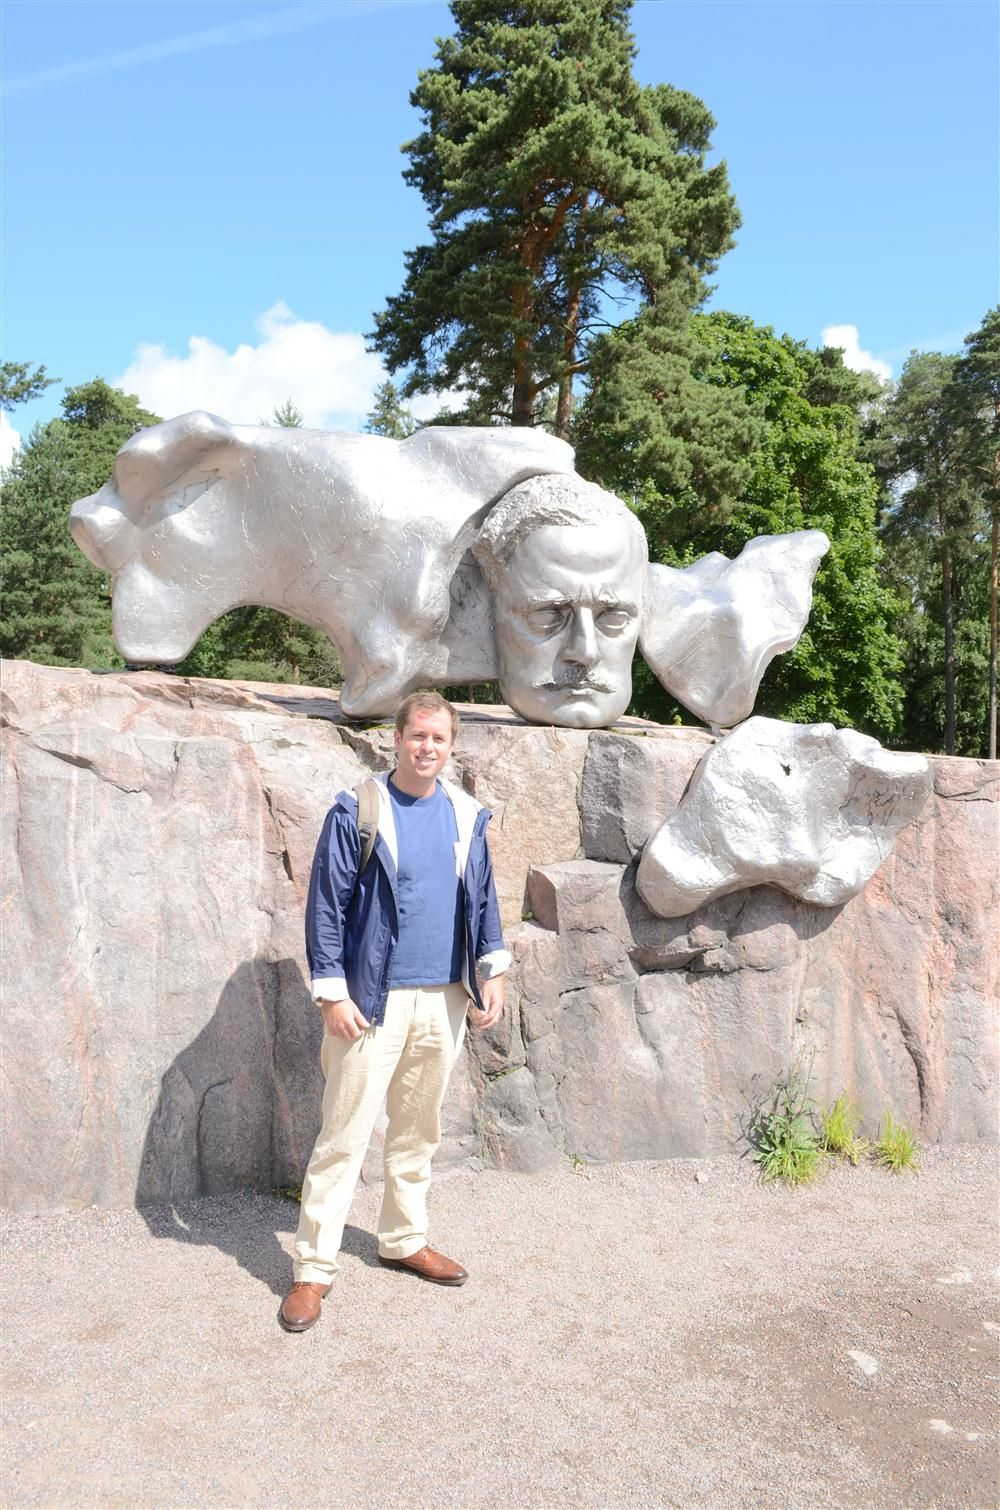 Teddy McKeon Jr. poses for a photo at the Sibelius Monument, which is dedicated to the Finnish composer Jean Sibelius.